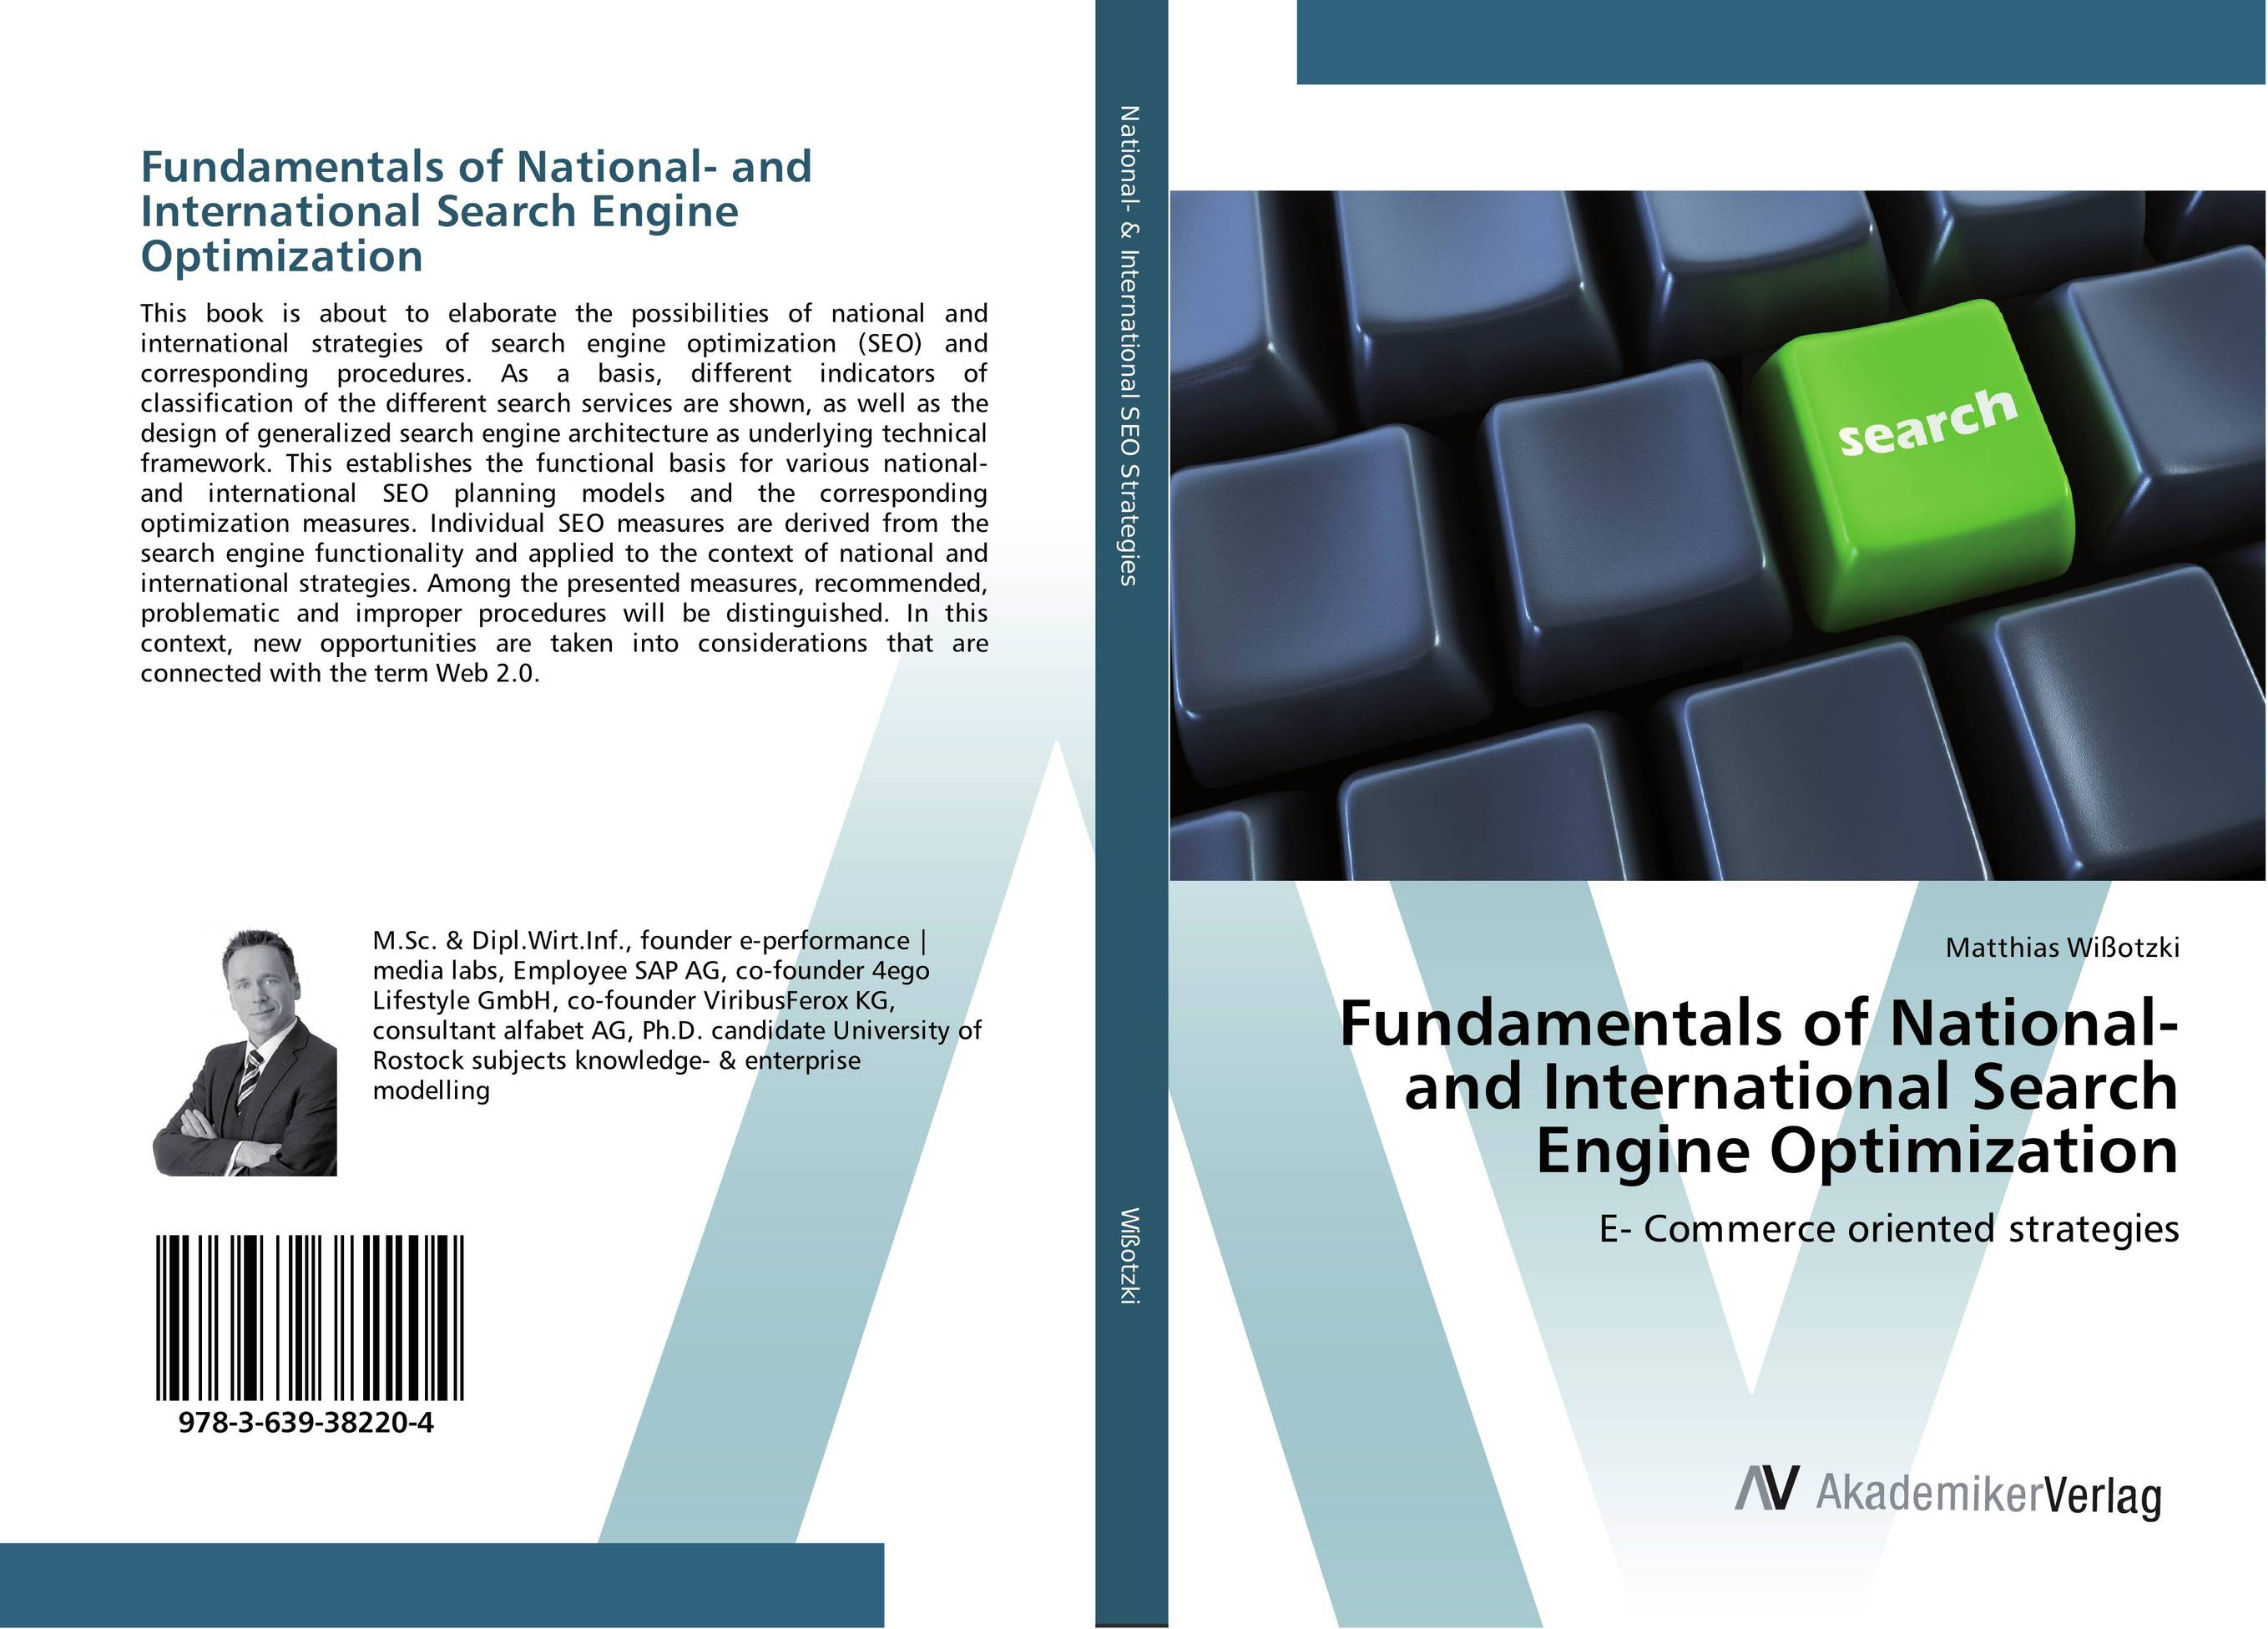 Fundamentals of National- and International Search Engine Optimization the fundamentals of international business